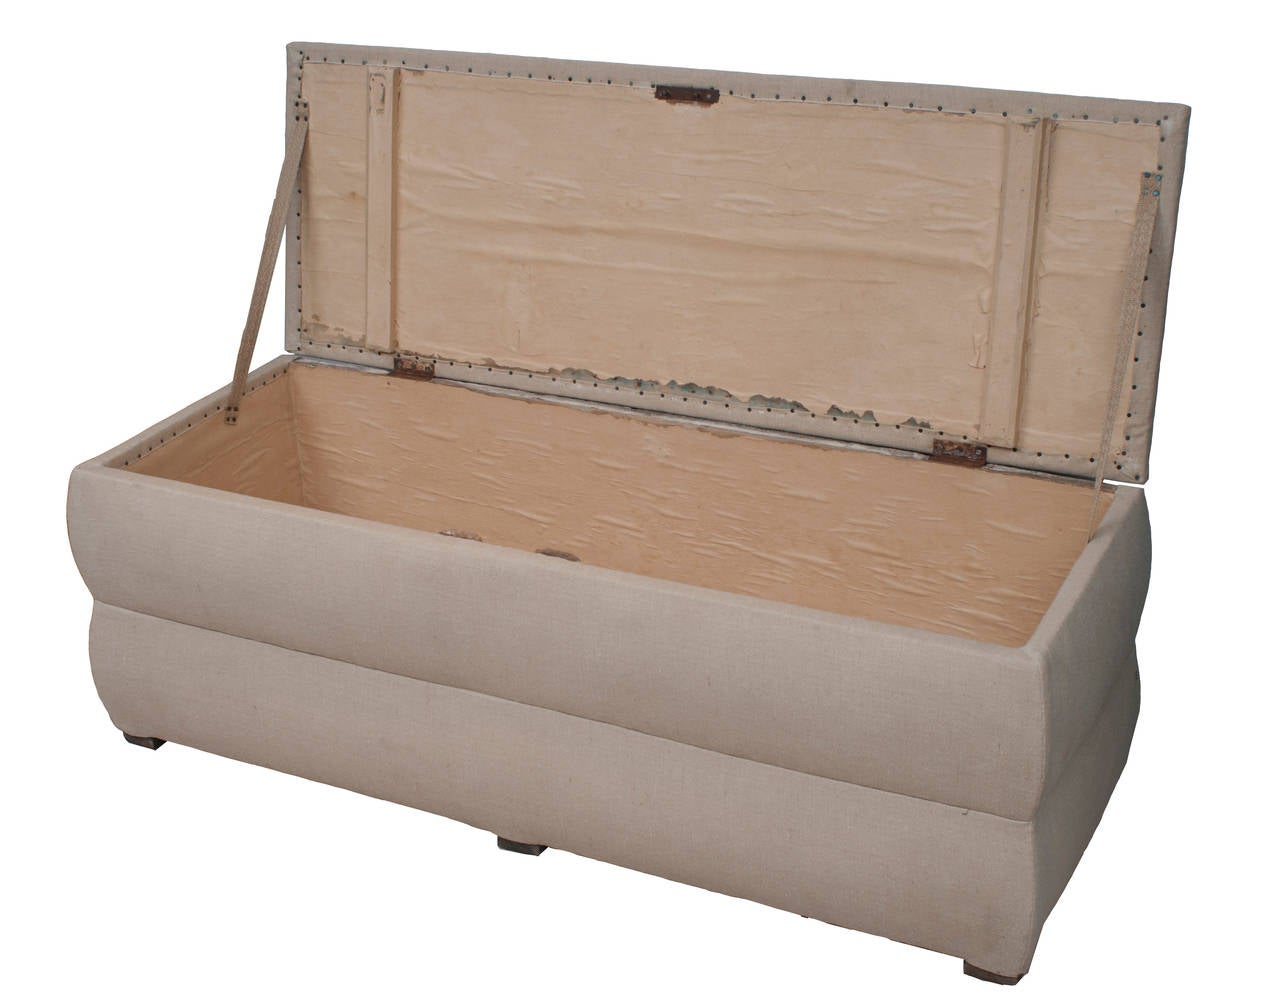 Pair of Italian Trunks Upholstered in Antique White Linen In Excellent Condition For Sale In Washington, DC